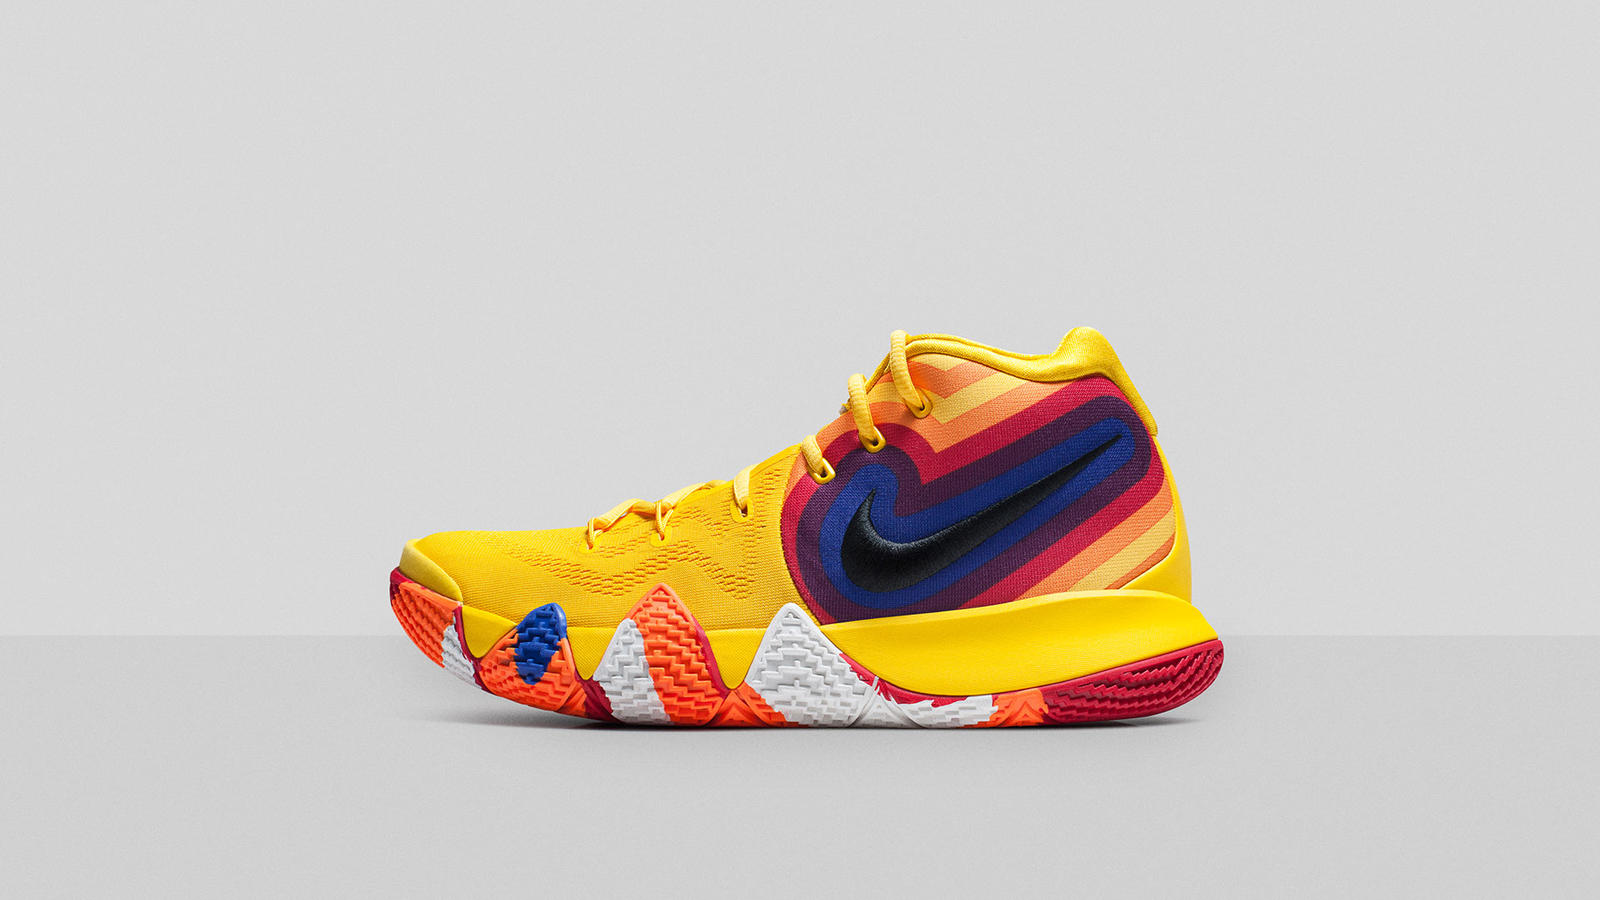 official photos a0809 f0094 nike kyrie 4 '70s decades pack - WearTesters